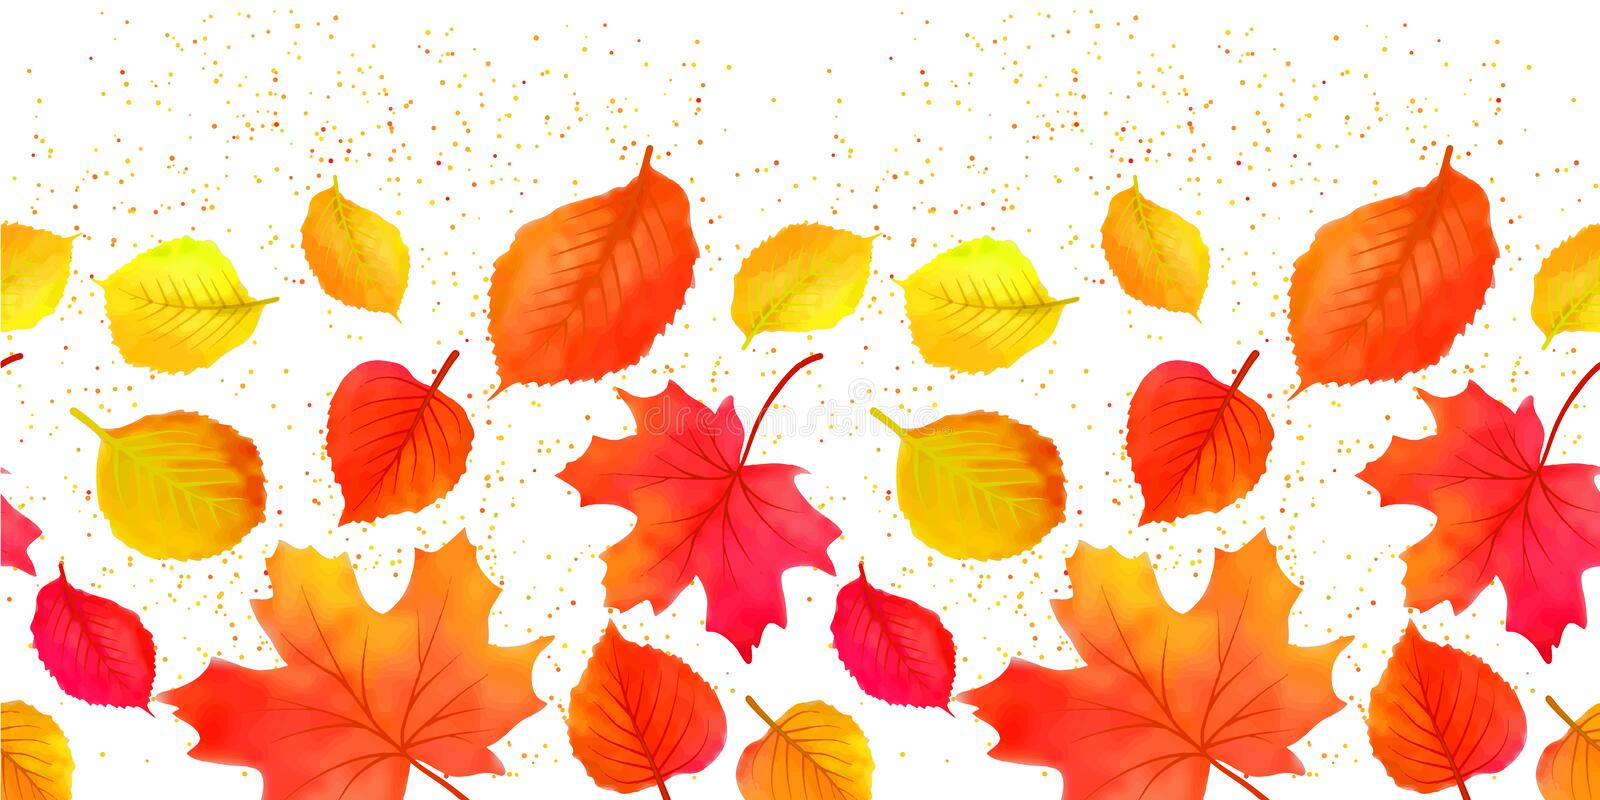 Seamless Bright Fall Autumn Leaves Border vector illustration